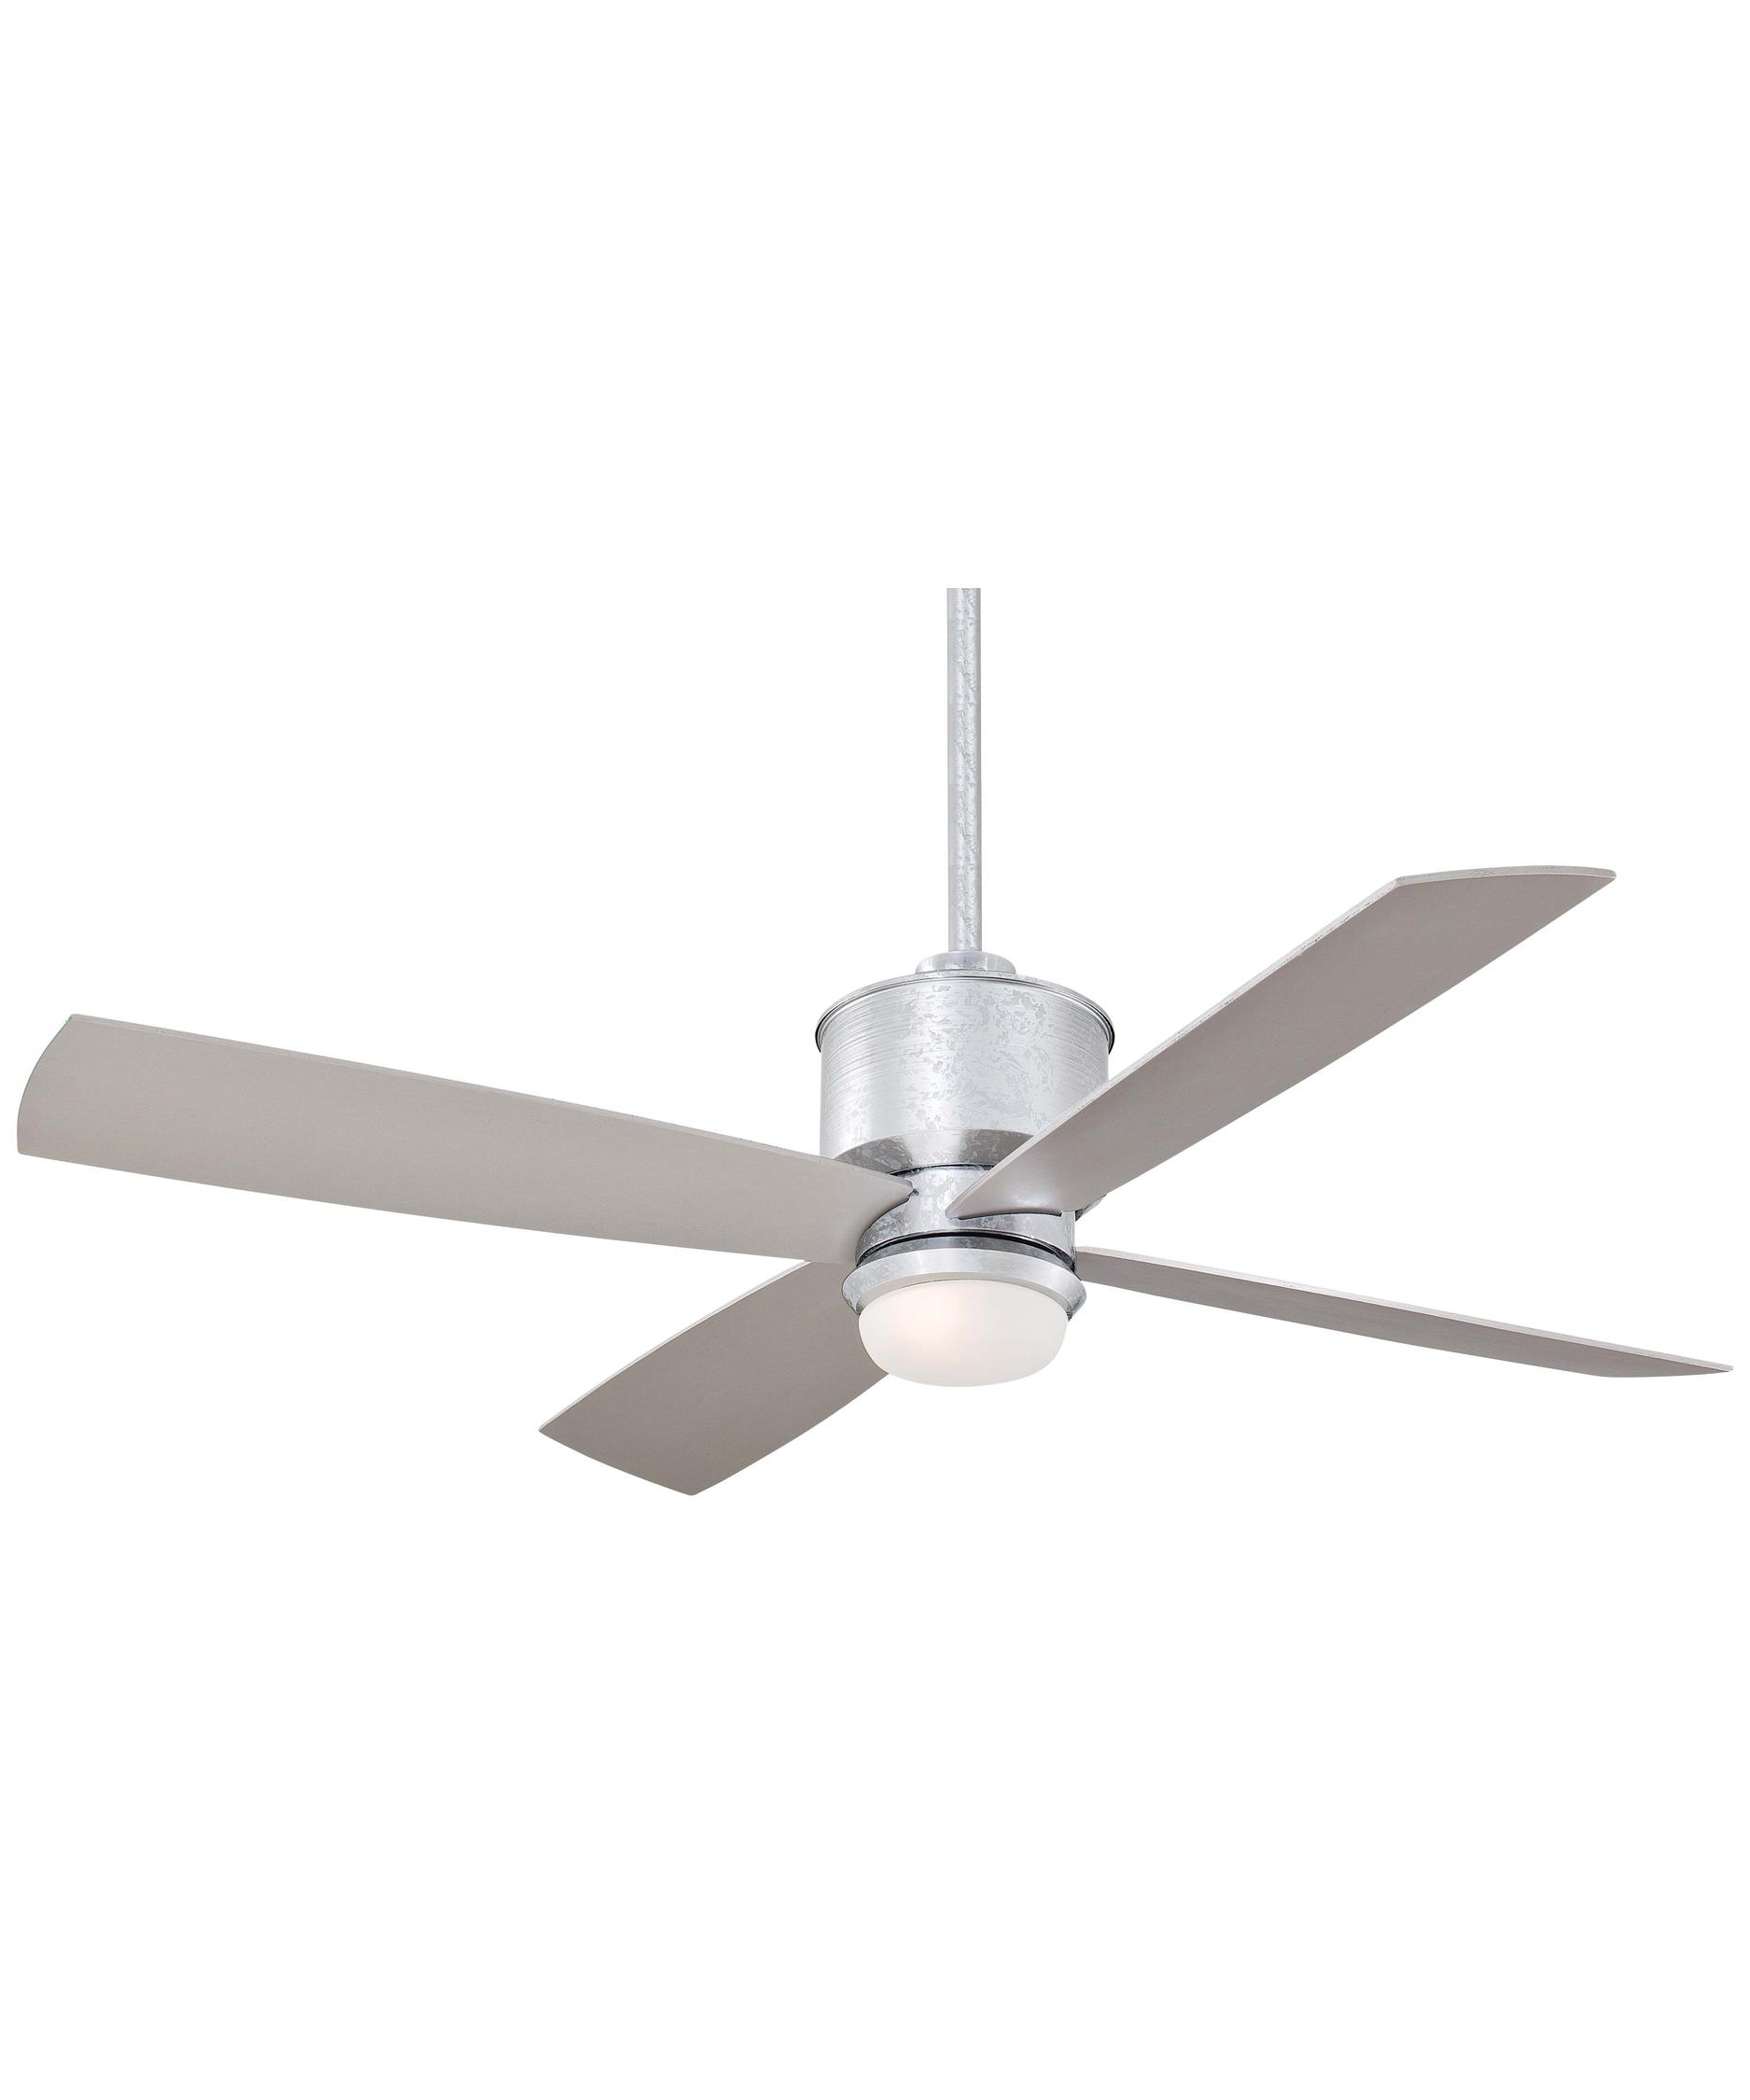 52 Inch Outdoor Ceiling Fans With Lights Within Most Recently Released Minka Aire F734 Strata 52 Inch 4 Blade Ceiling Fan (View 8 of 20)